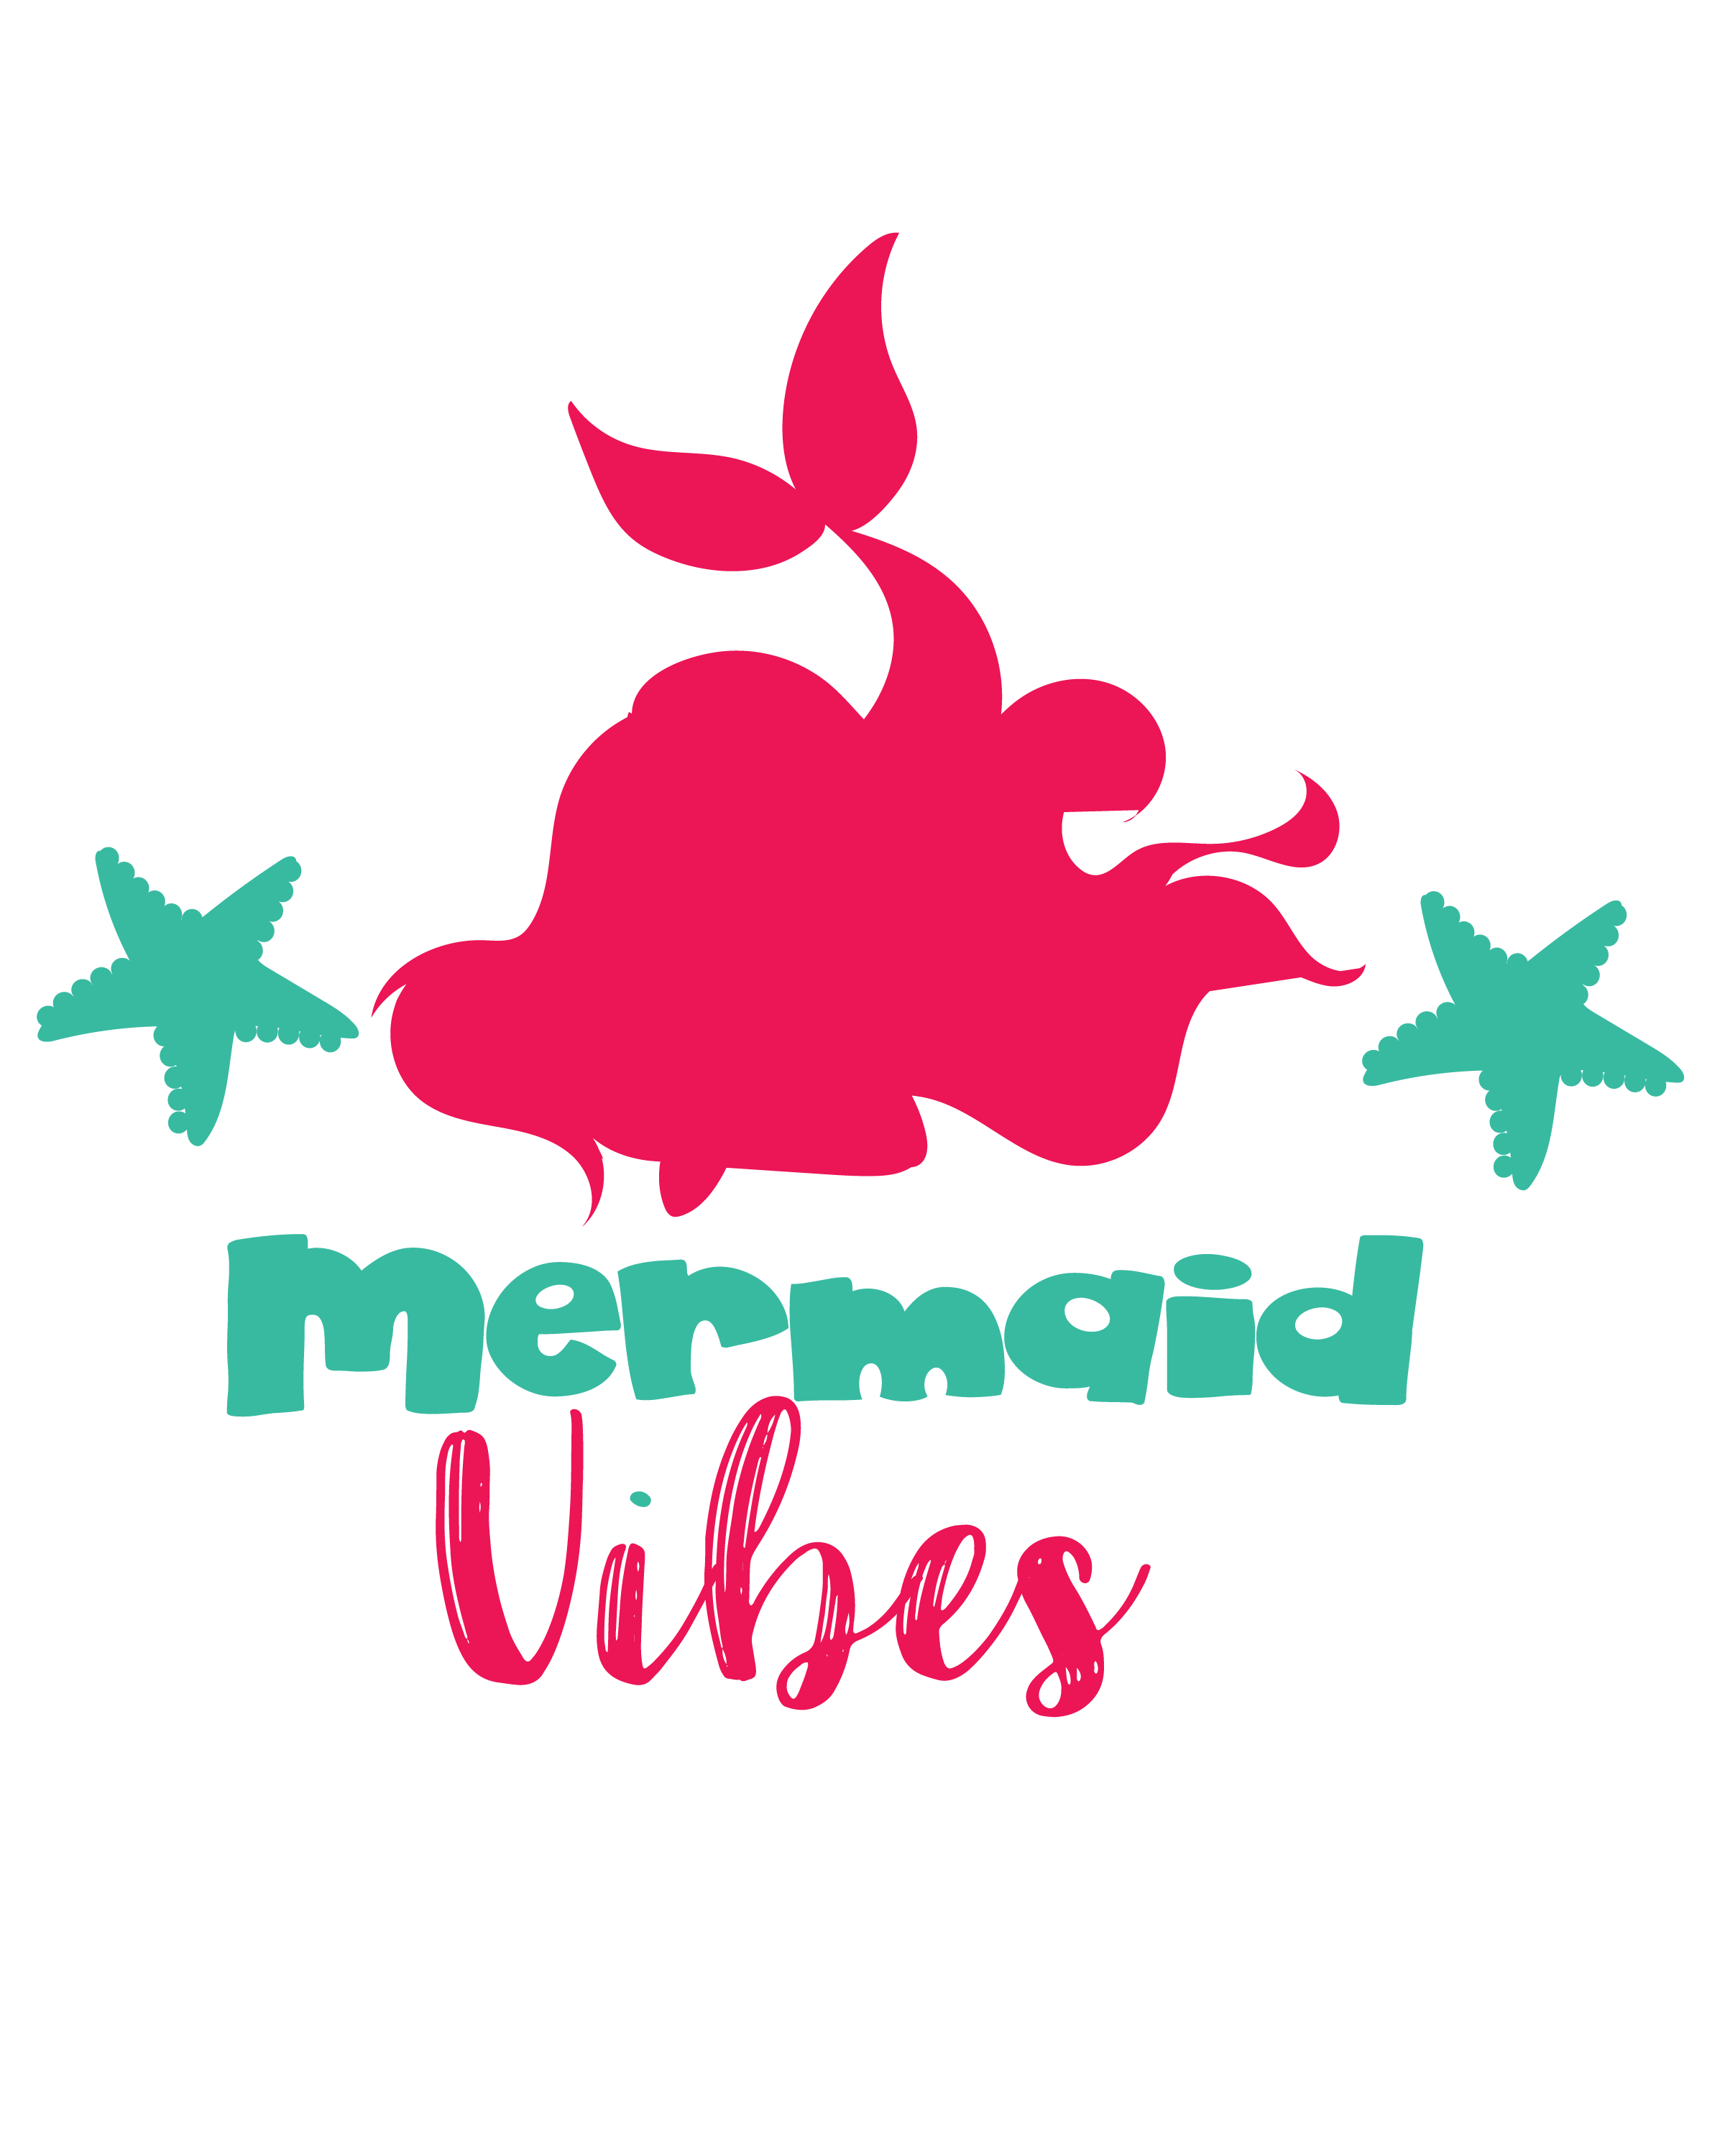 Svg mermaid. Vibes cutting files dxf